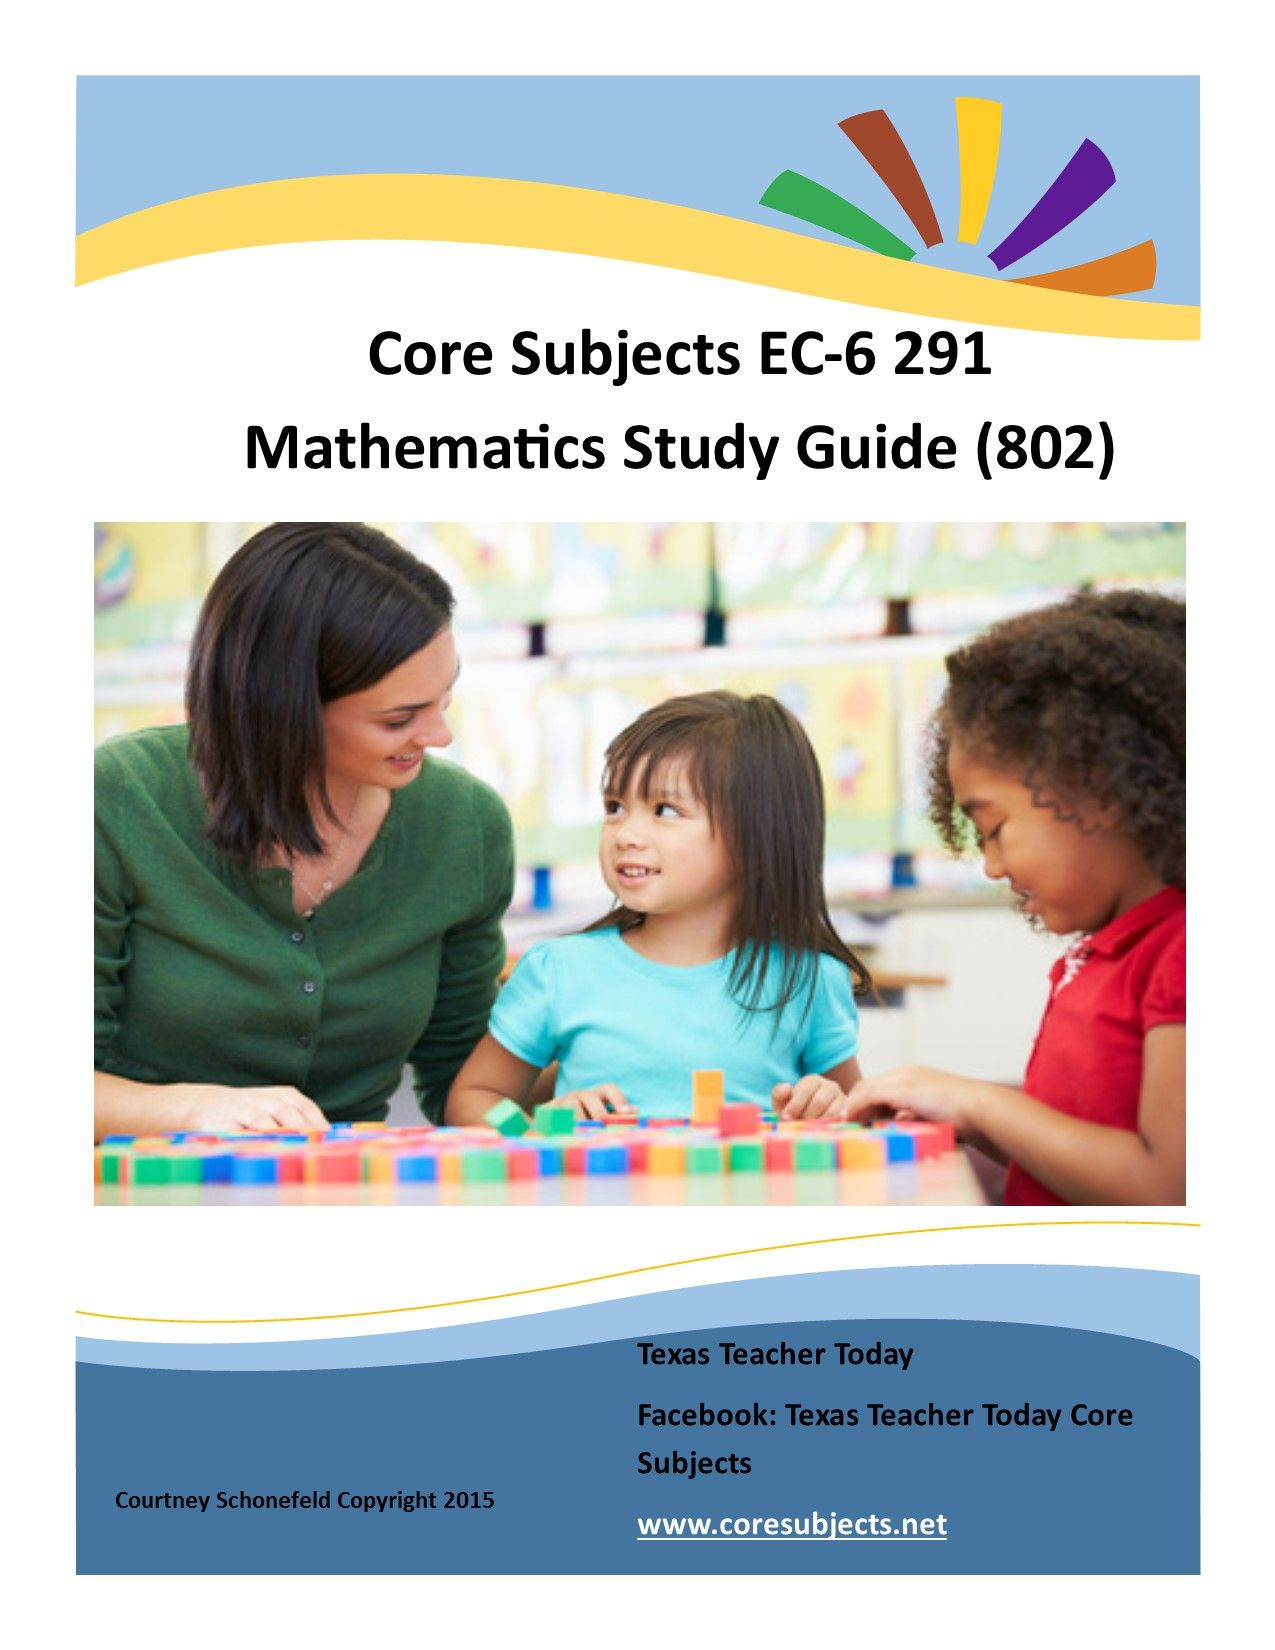 Pin On Core Subjects Ec 6 Study Material